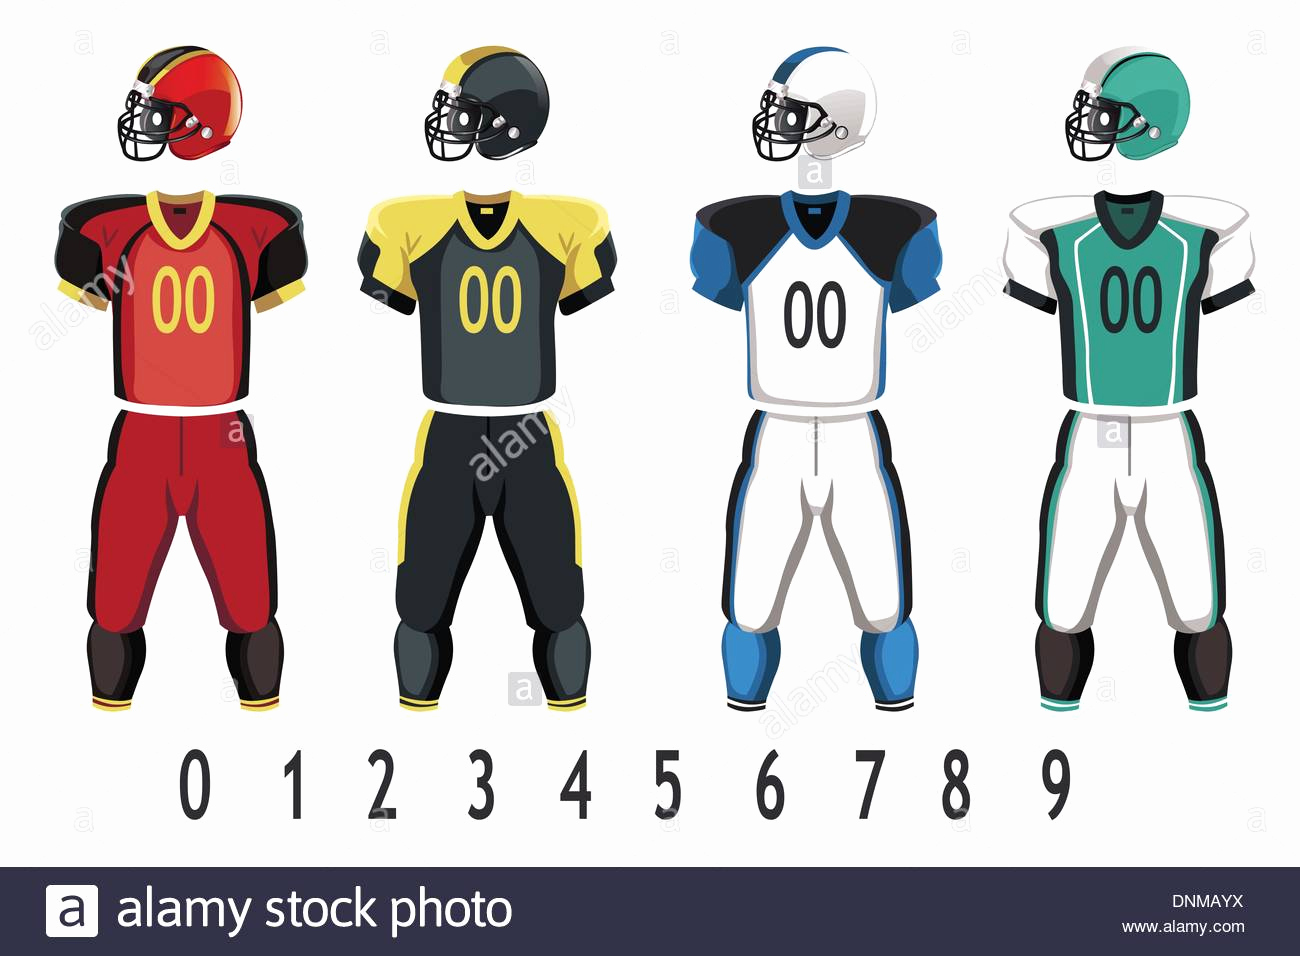 38be4279716 1300x956 30 Awesome Photograph Of American Football Jersey Template